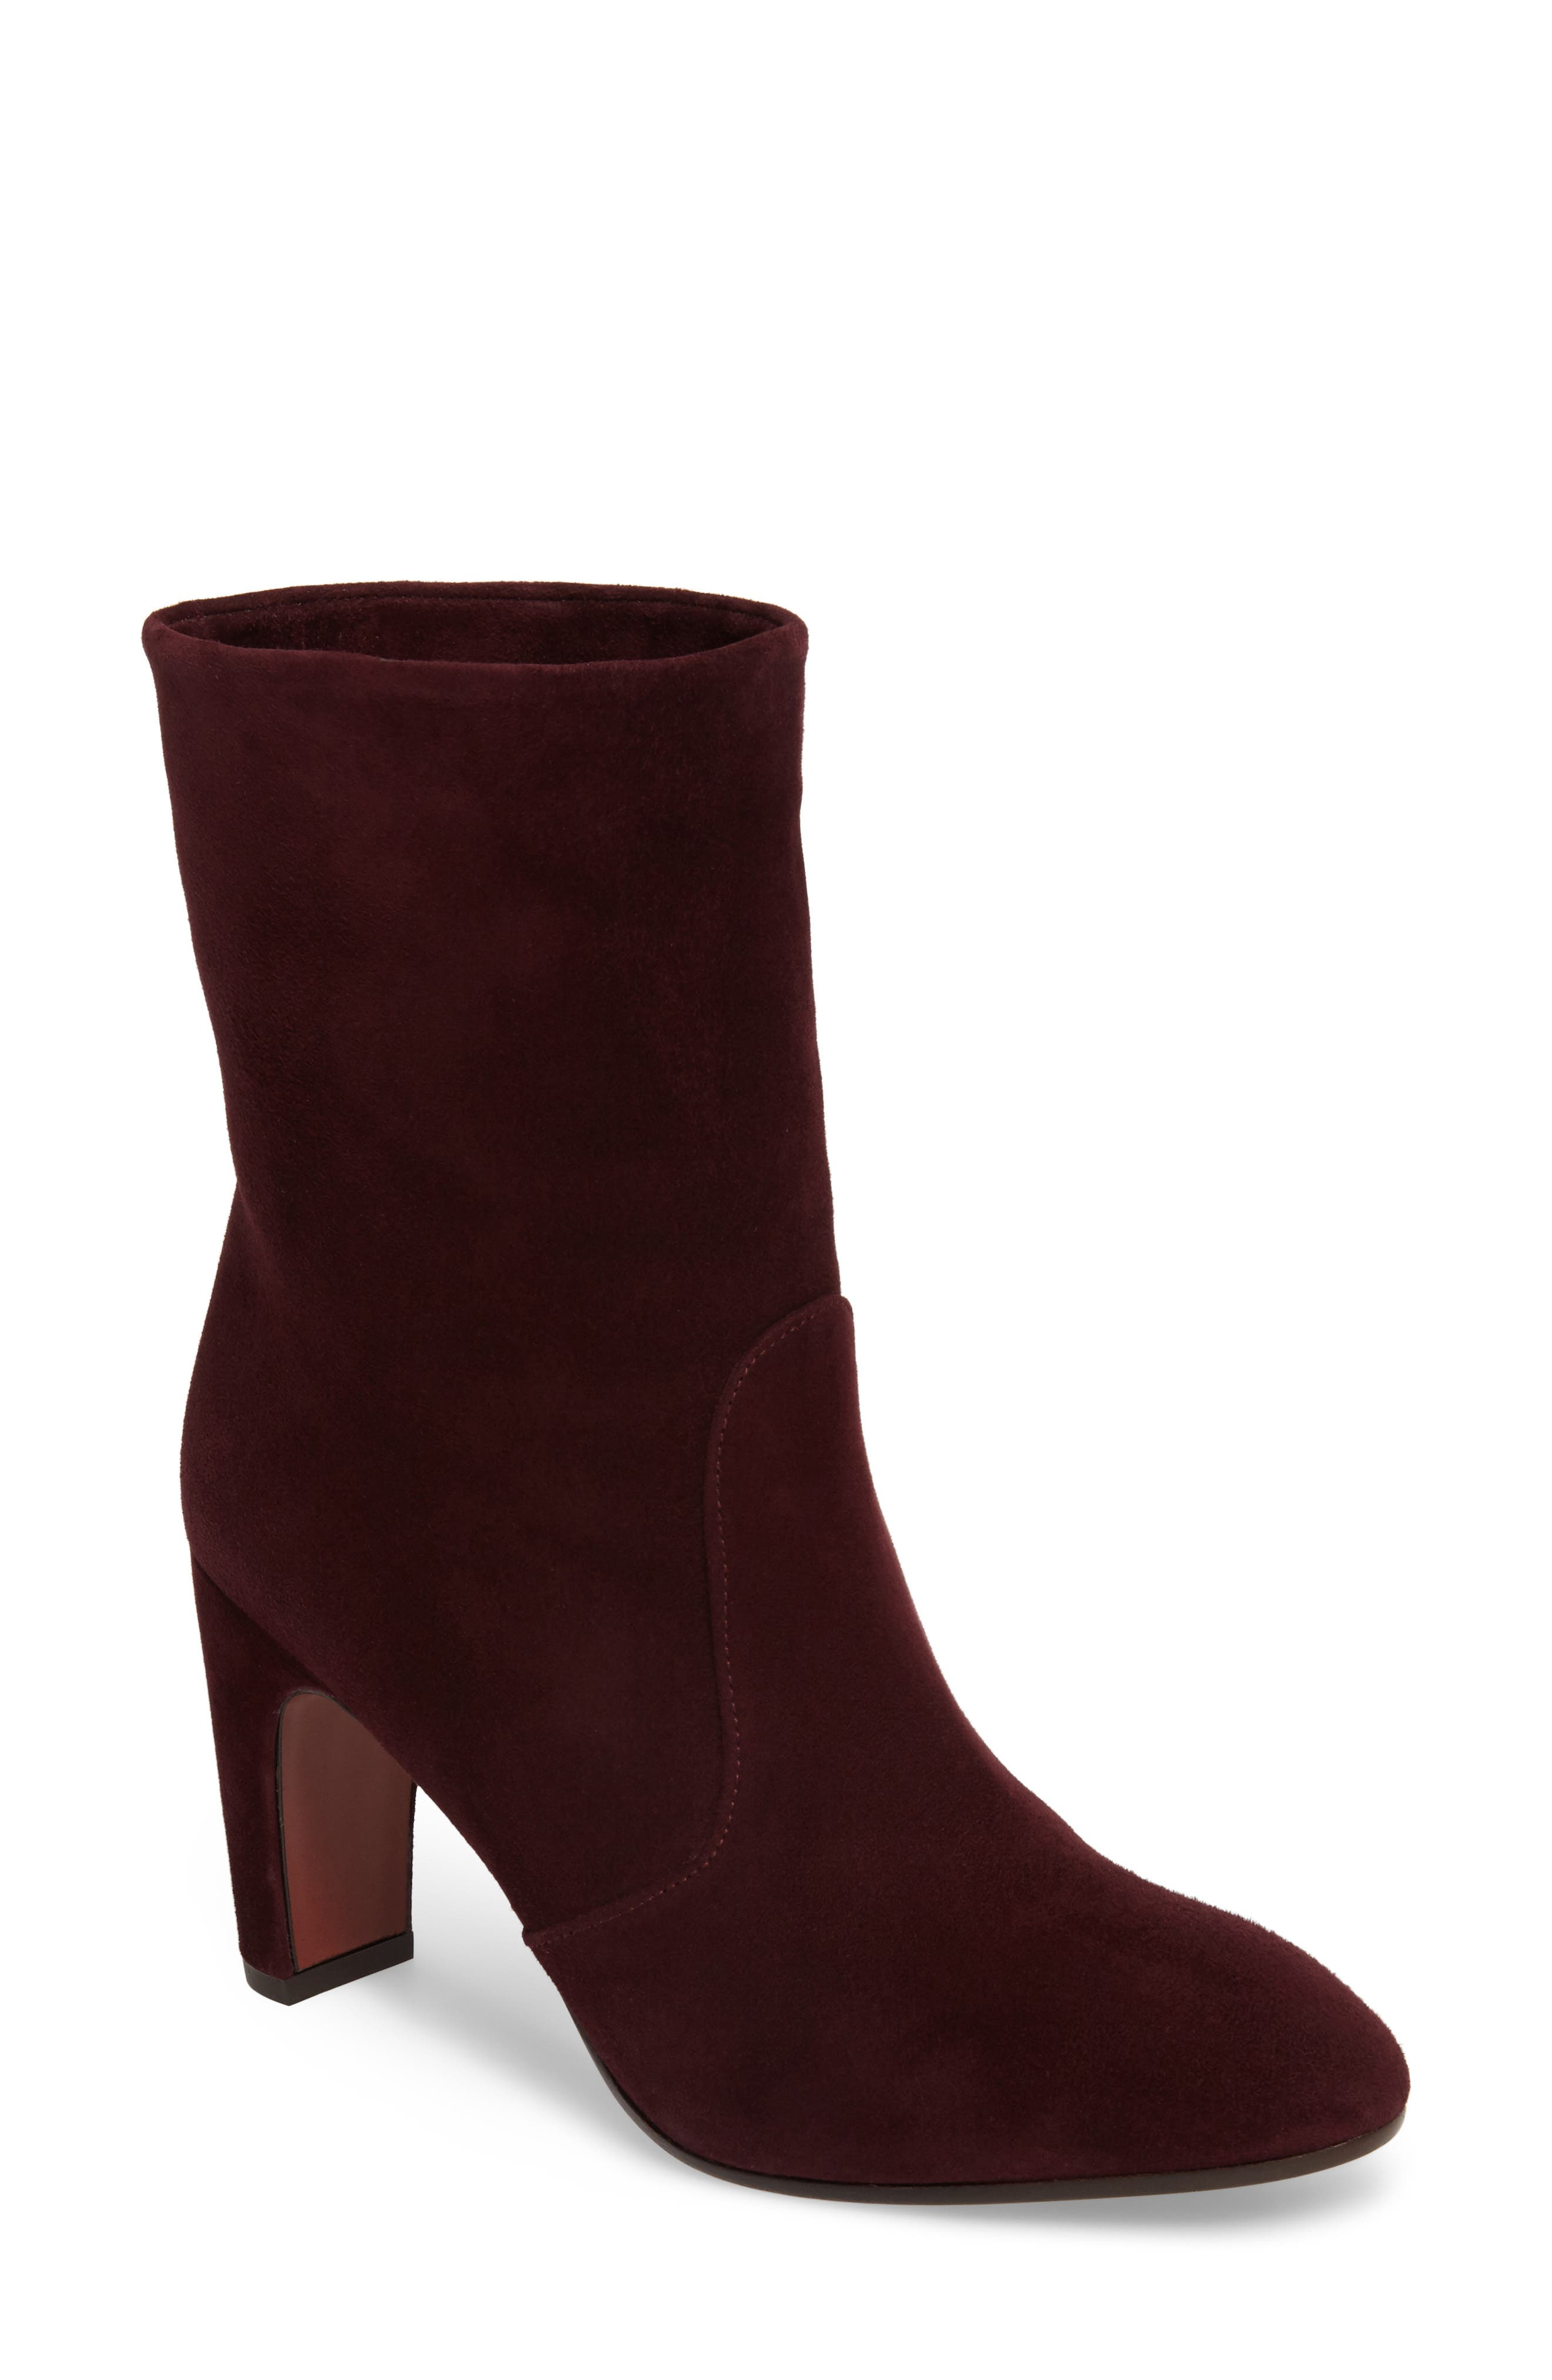 Xicle Bootie,                         Main,                         color,